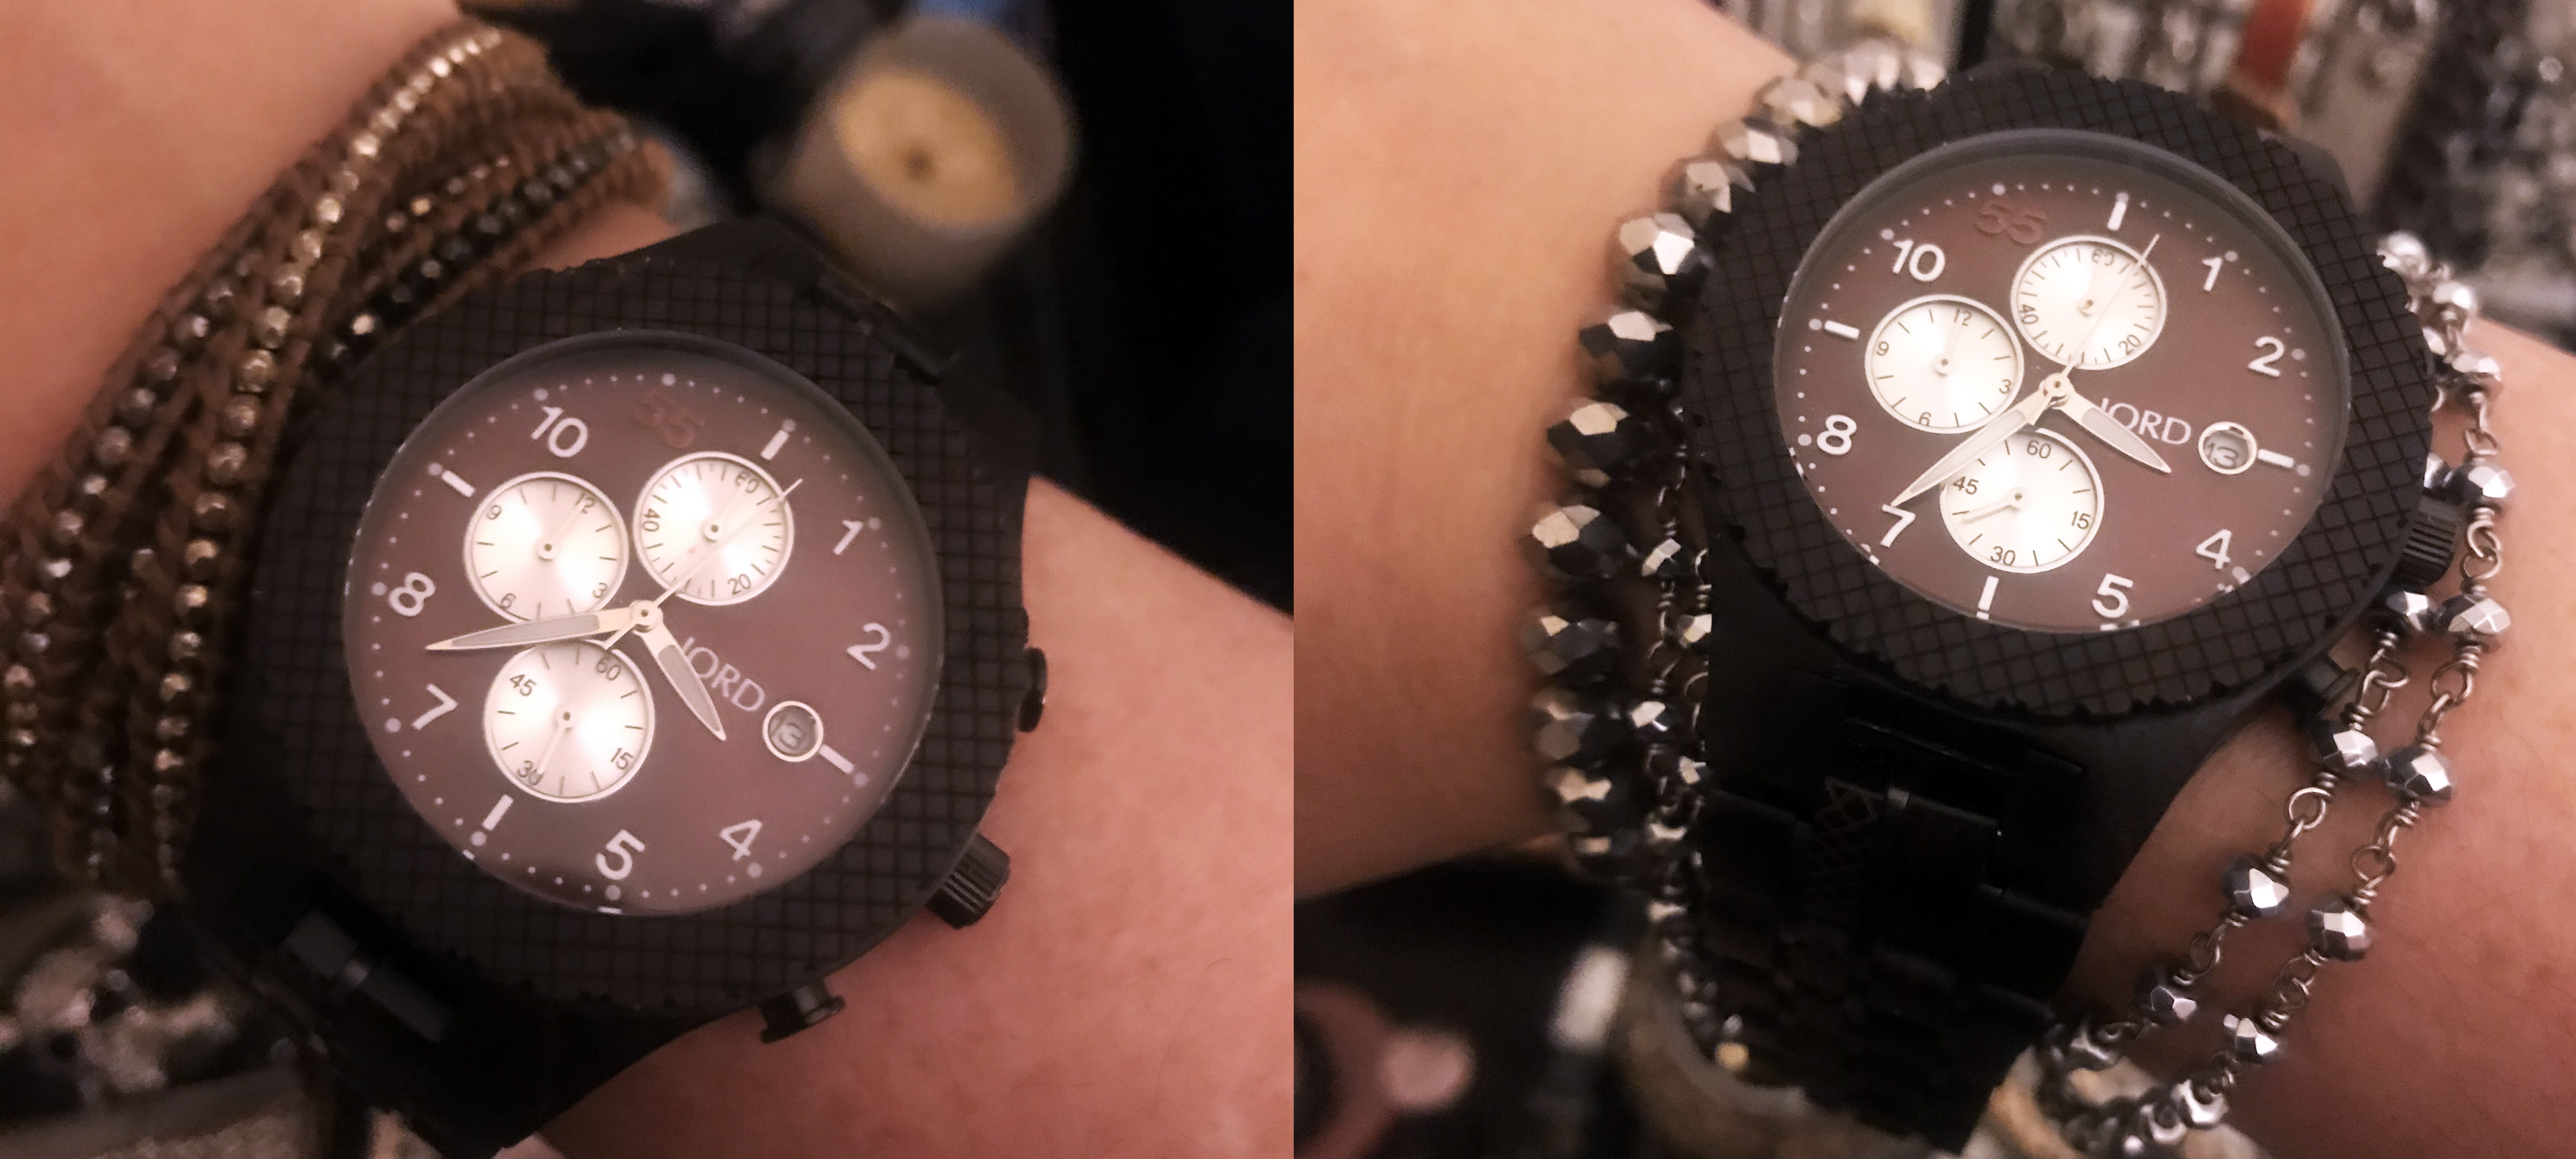 Check Out My New Jord Watch